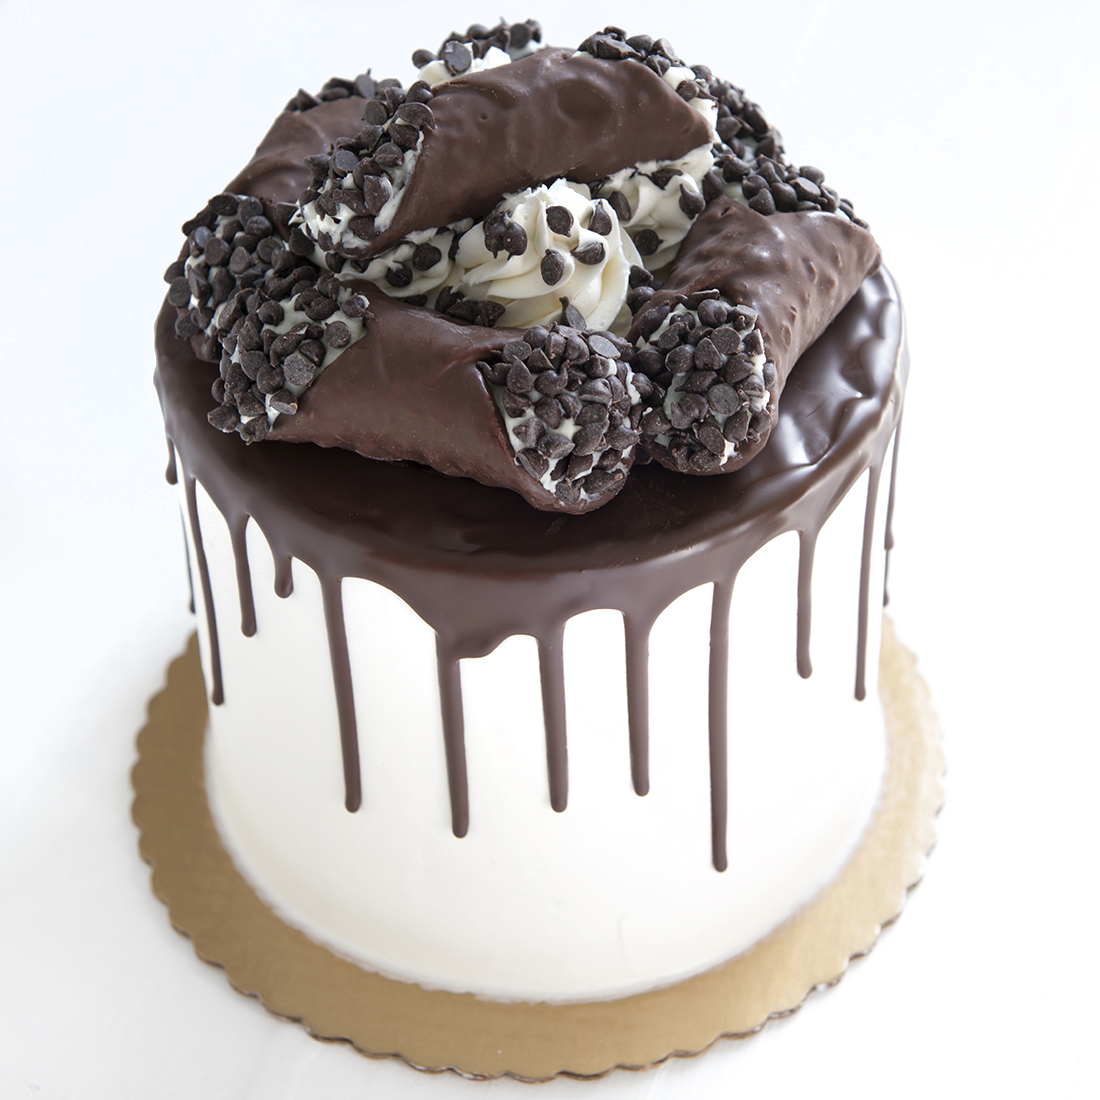 Holy Cannoli! - Vanilla cake layered with our signature chocolate chip cannoli cream, vanilla buttercream frosting, chocolate hazelnut 'drip', chocolate covered cannolis6